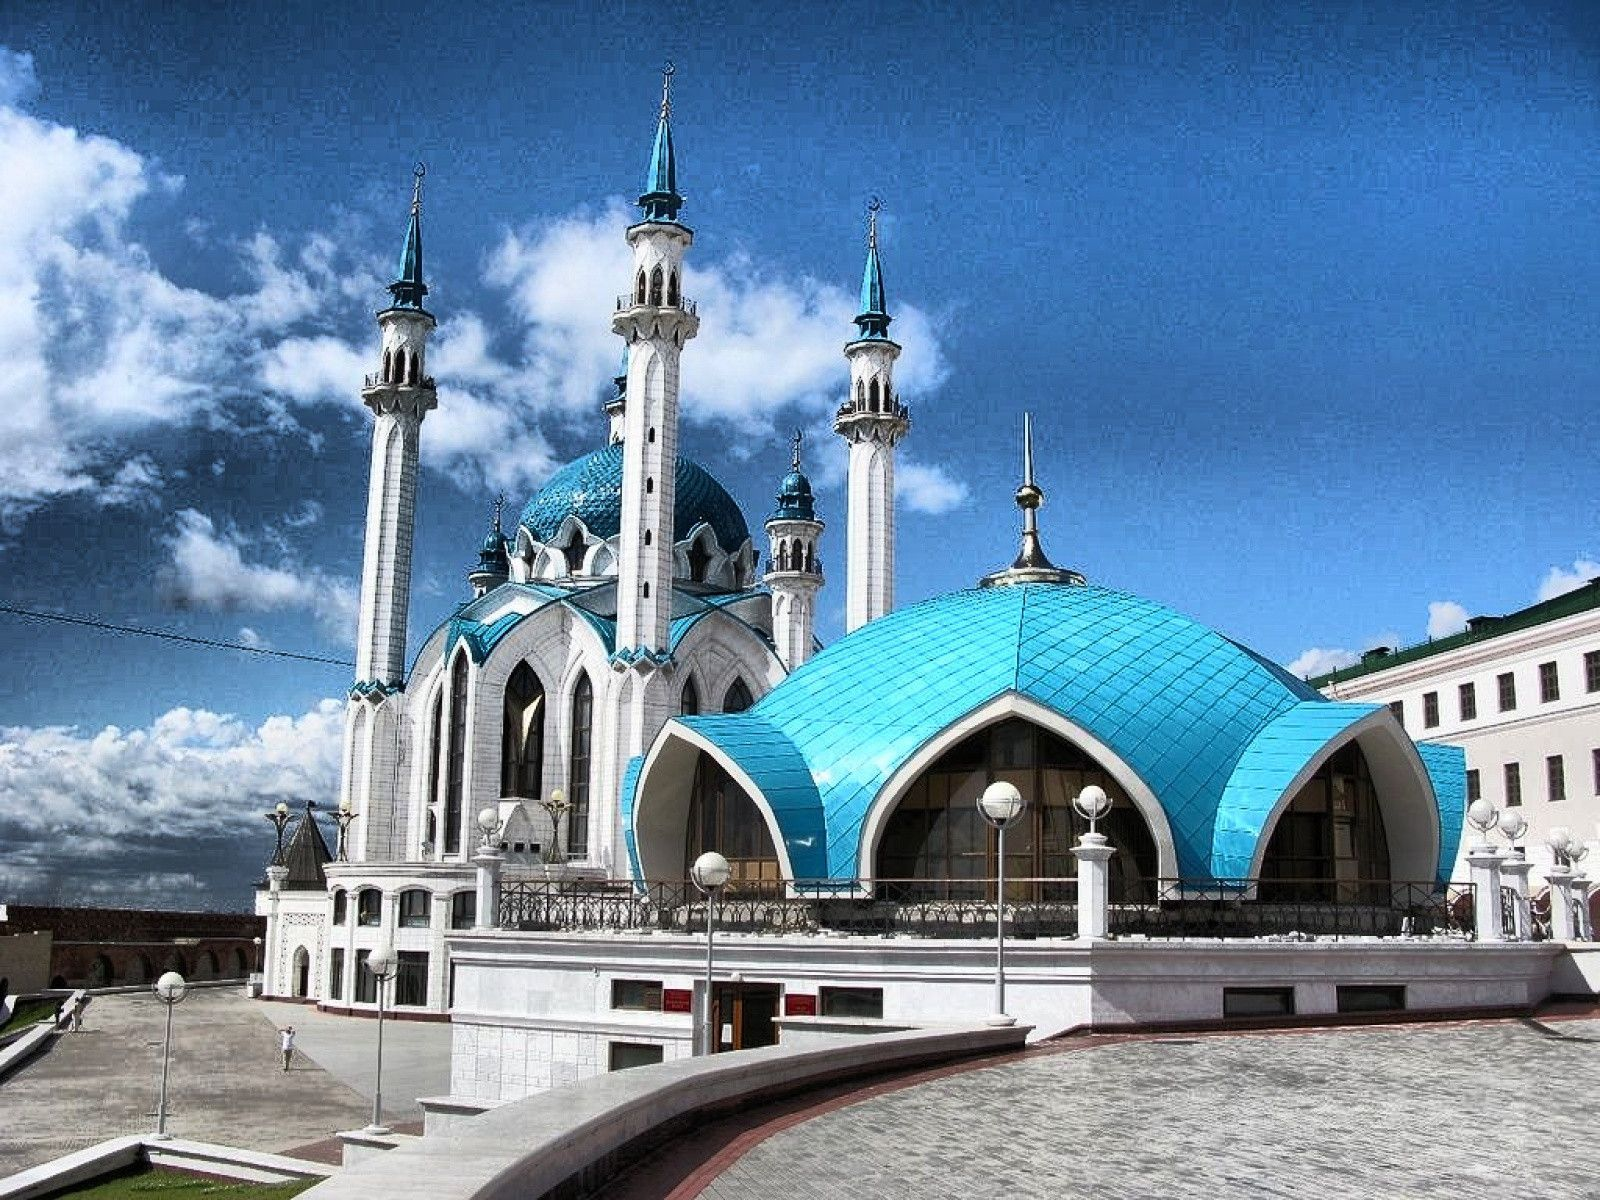 download world beautiful mosque wallpaper gallery images